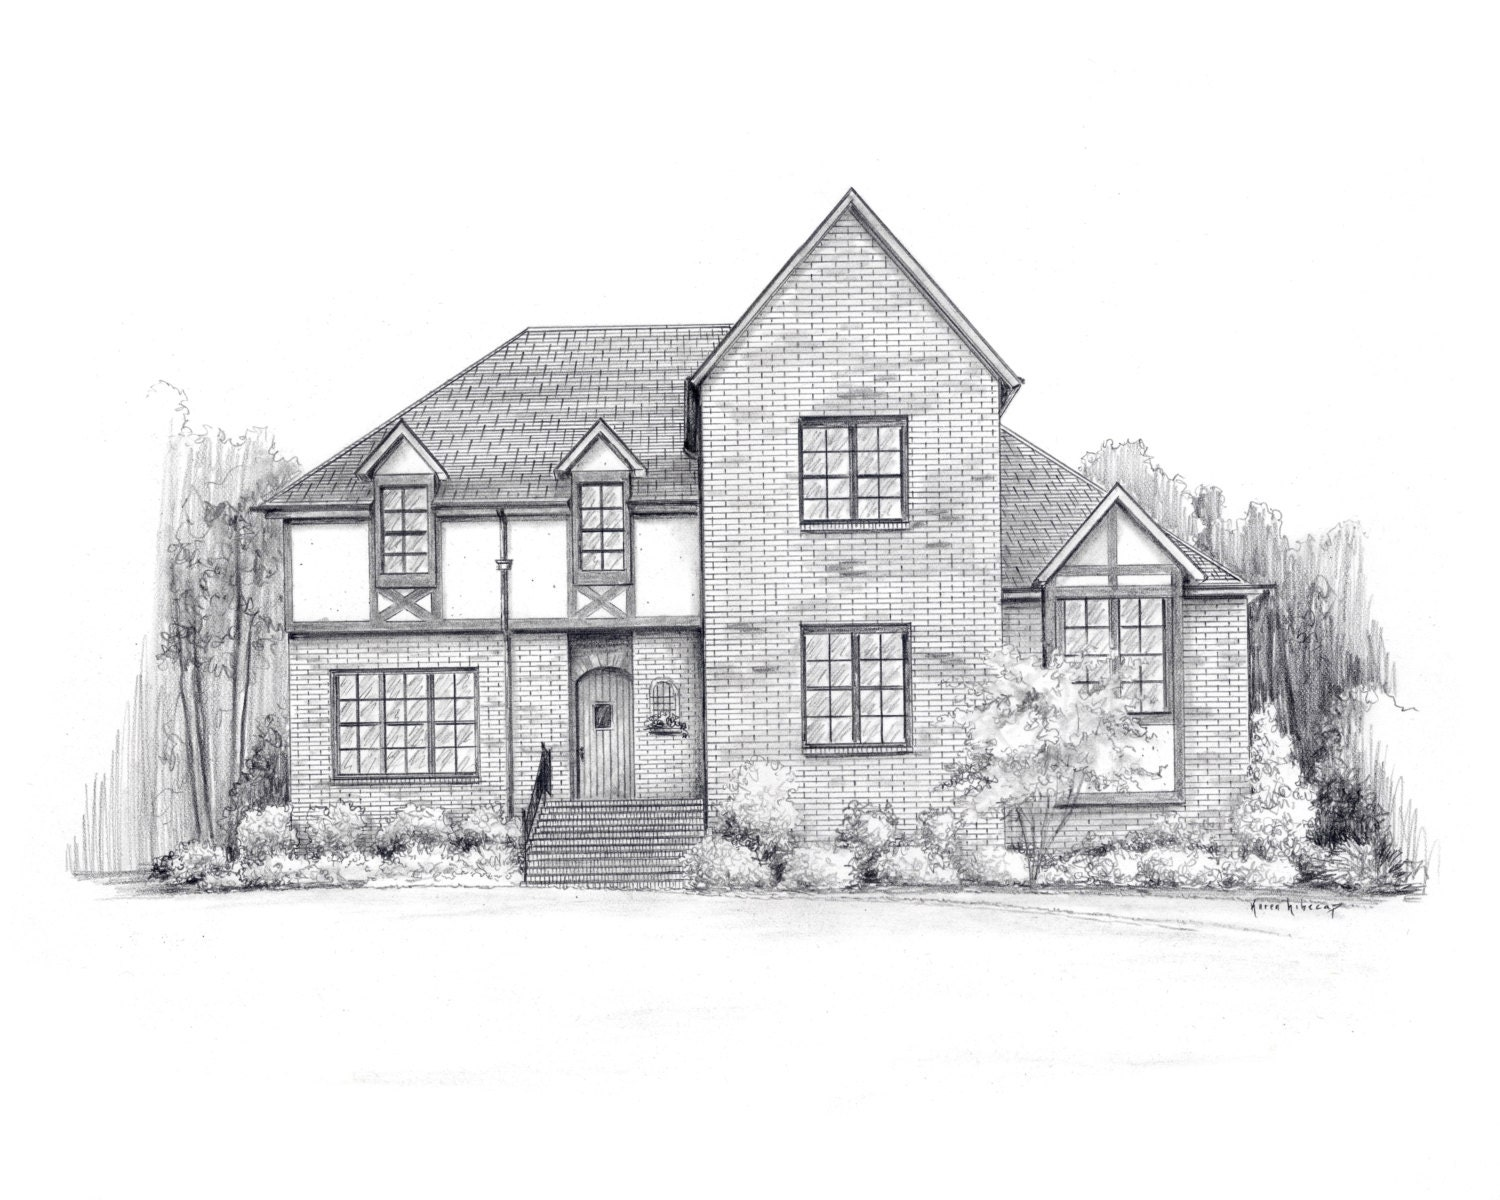 11 x 14 pencil house sketch architectural for Architectural drawings for houses